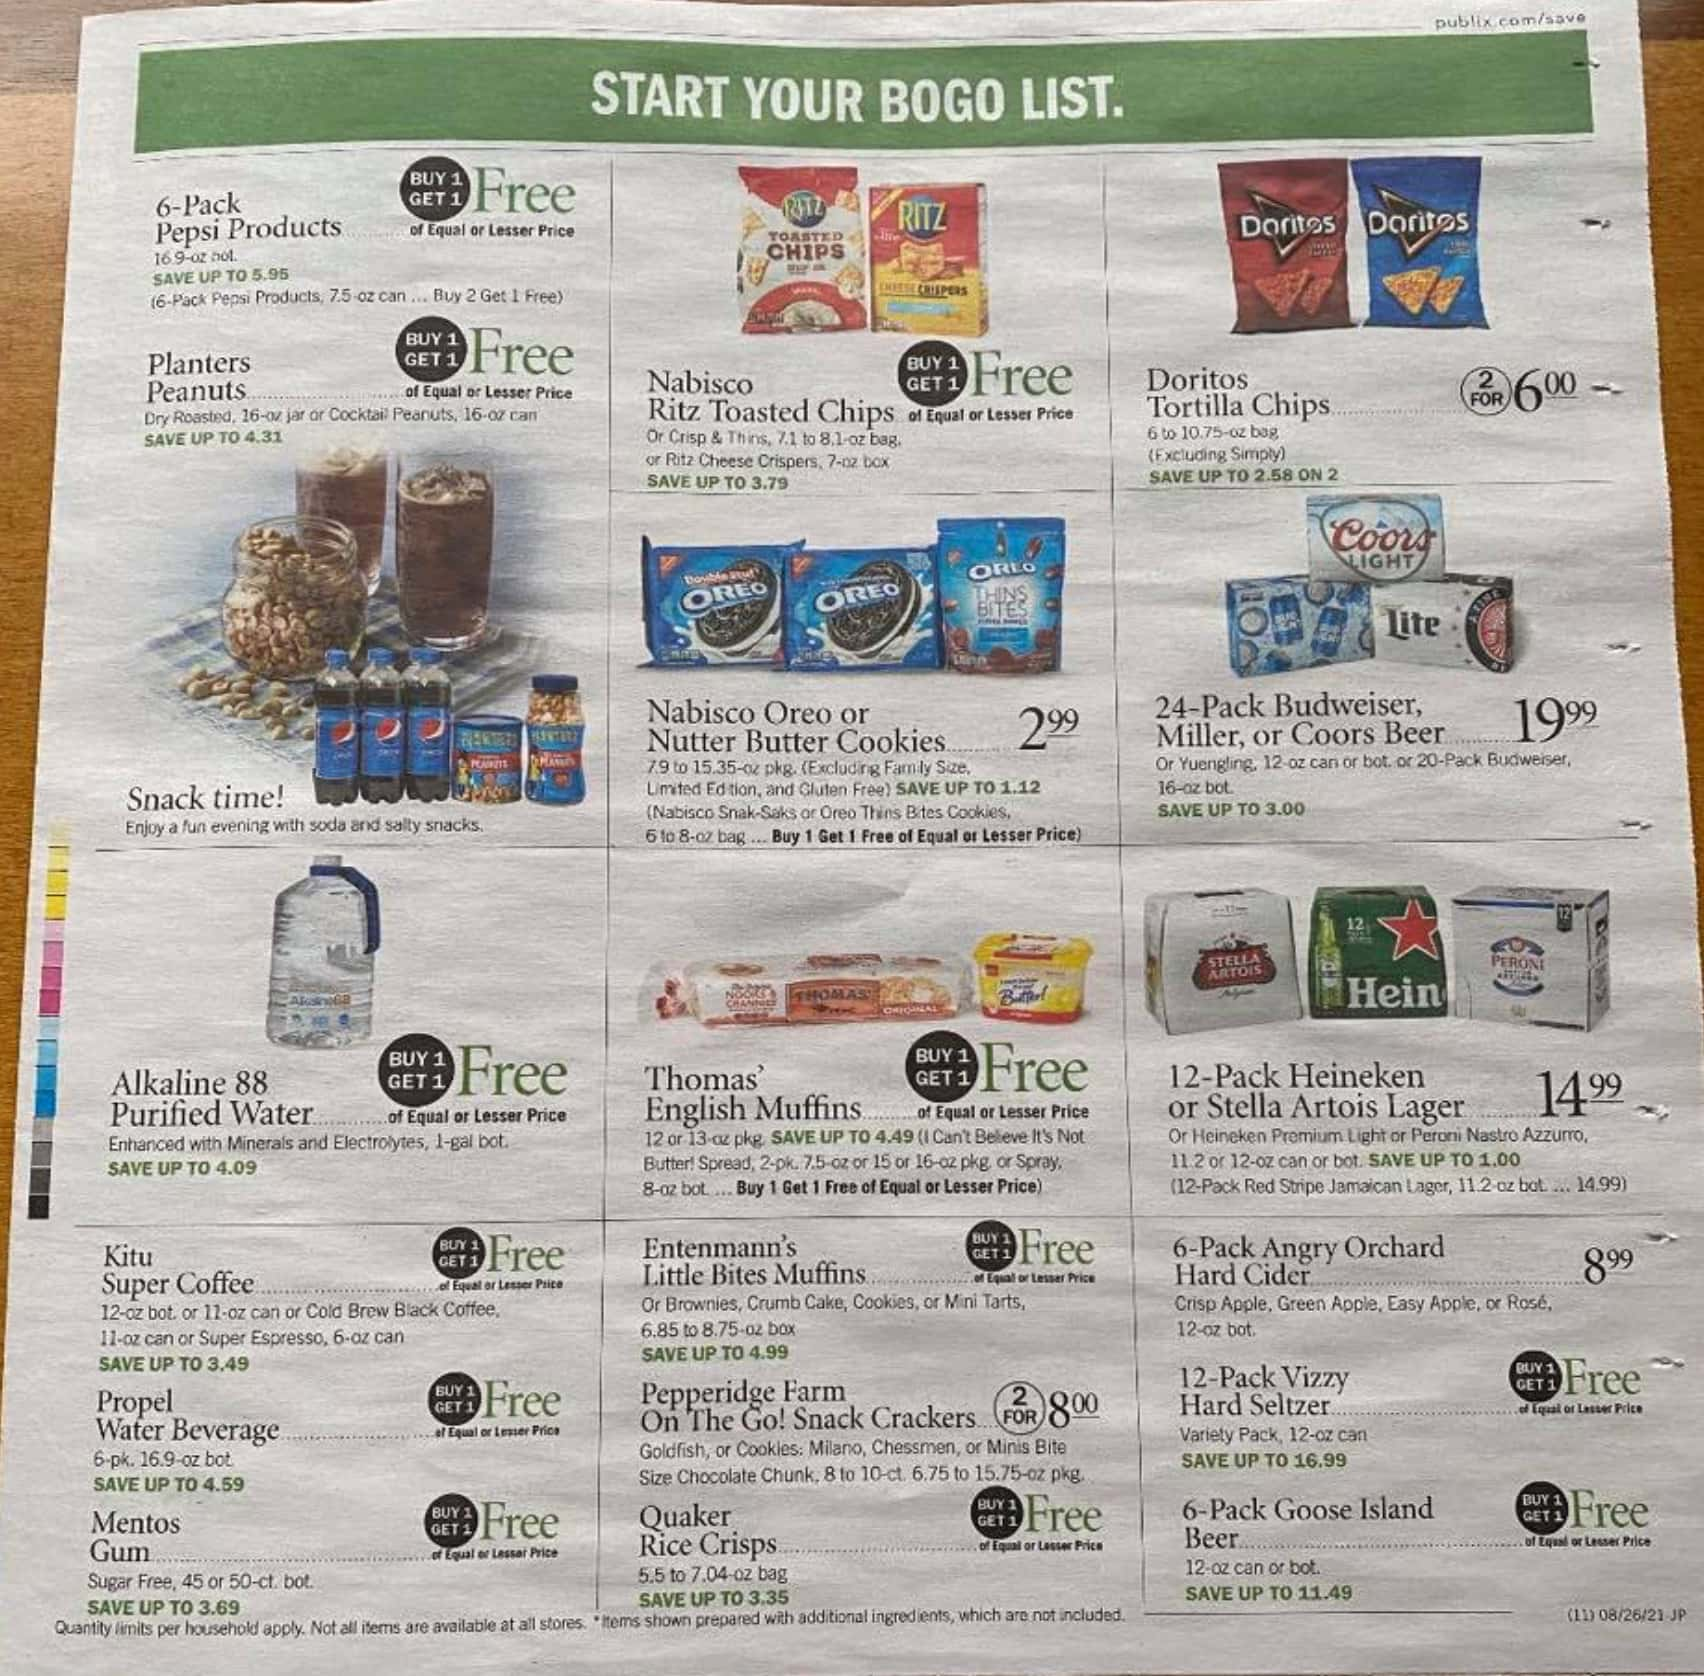 publix_weekly_ad_082521_11